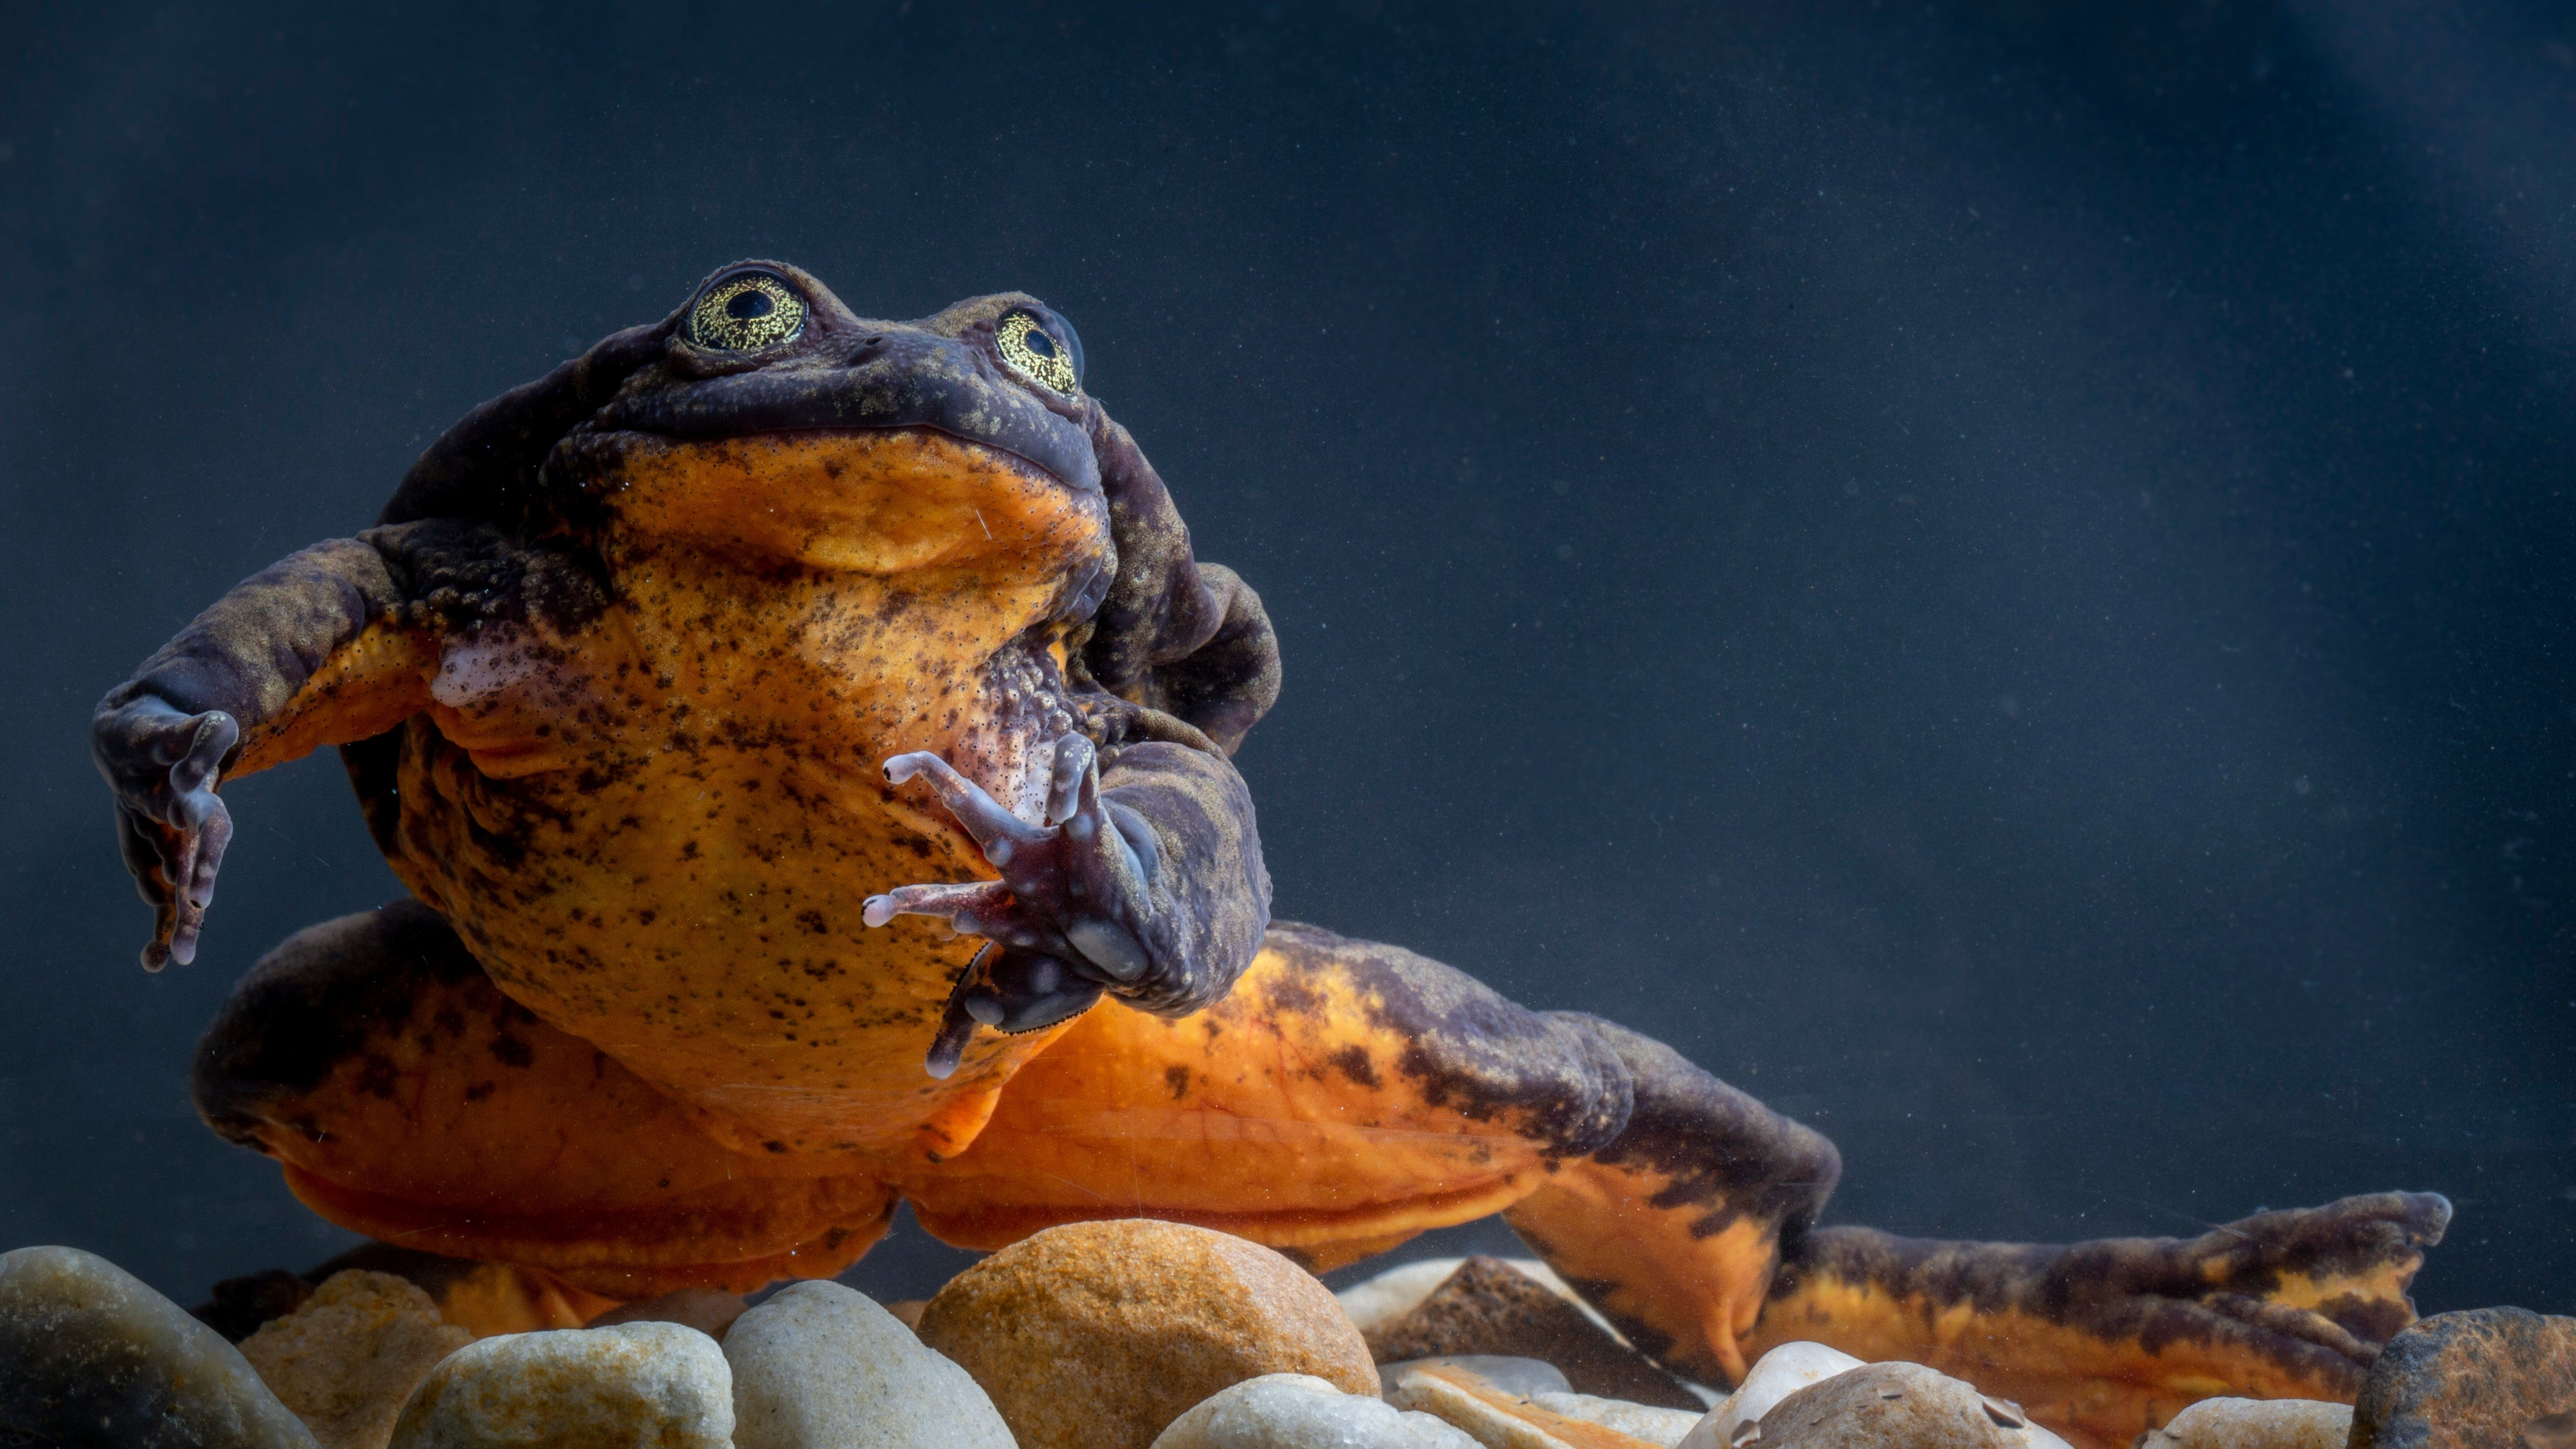 Lonely Frog Romeo Finds His Juliet –Plus 5 Other Cute Animals To End The